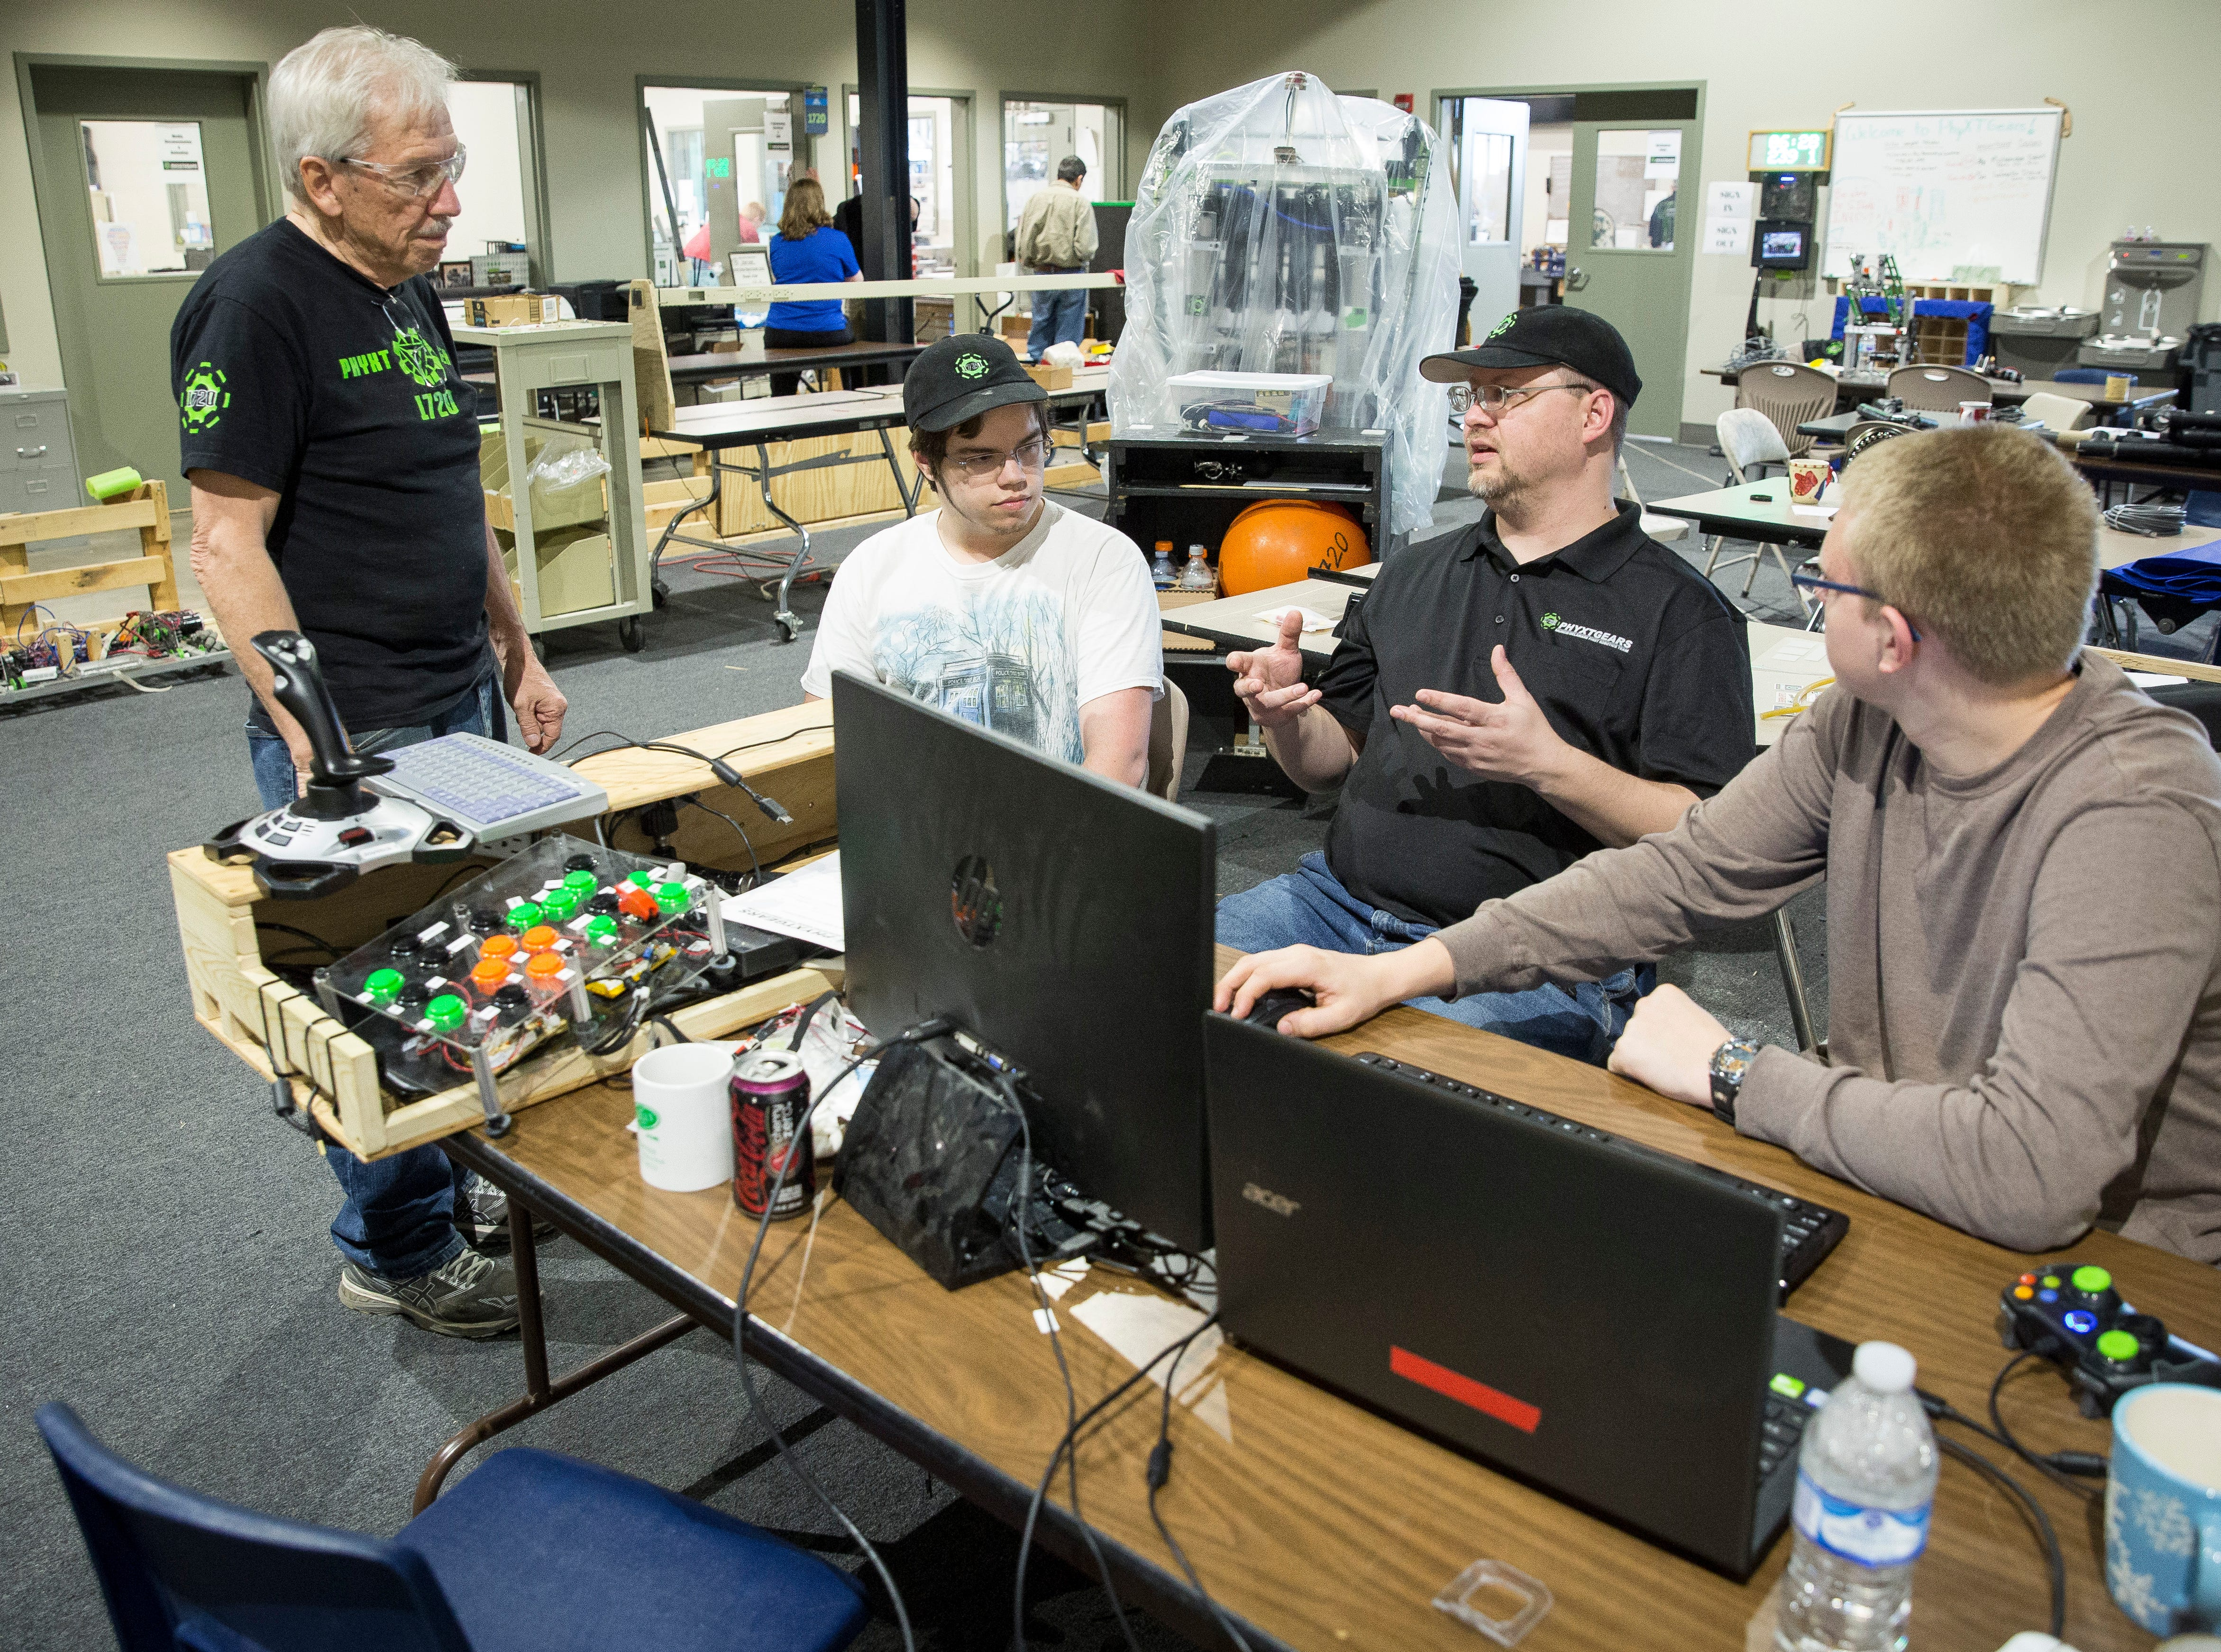 Members of PhyXTGears work on last minute upgrades to coding and mechanical work before heading to the world championship in Detroit Michigan. The group, which works out of Madjax,